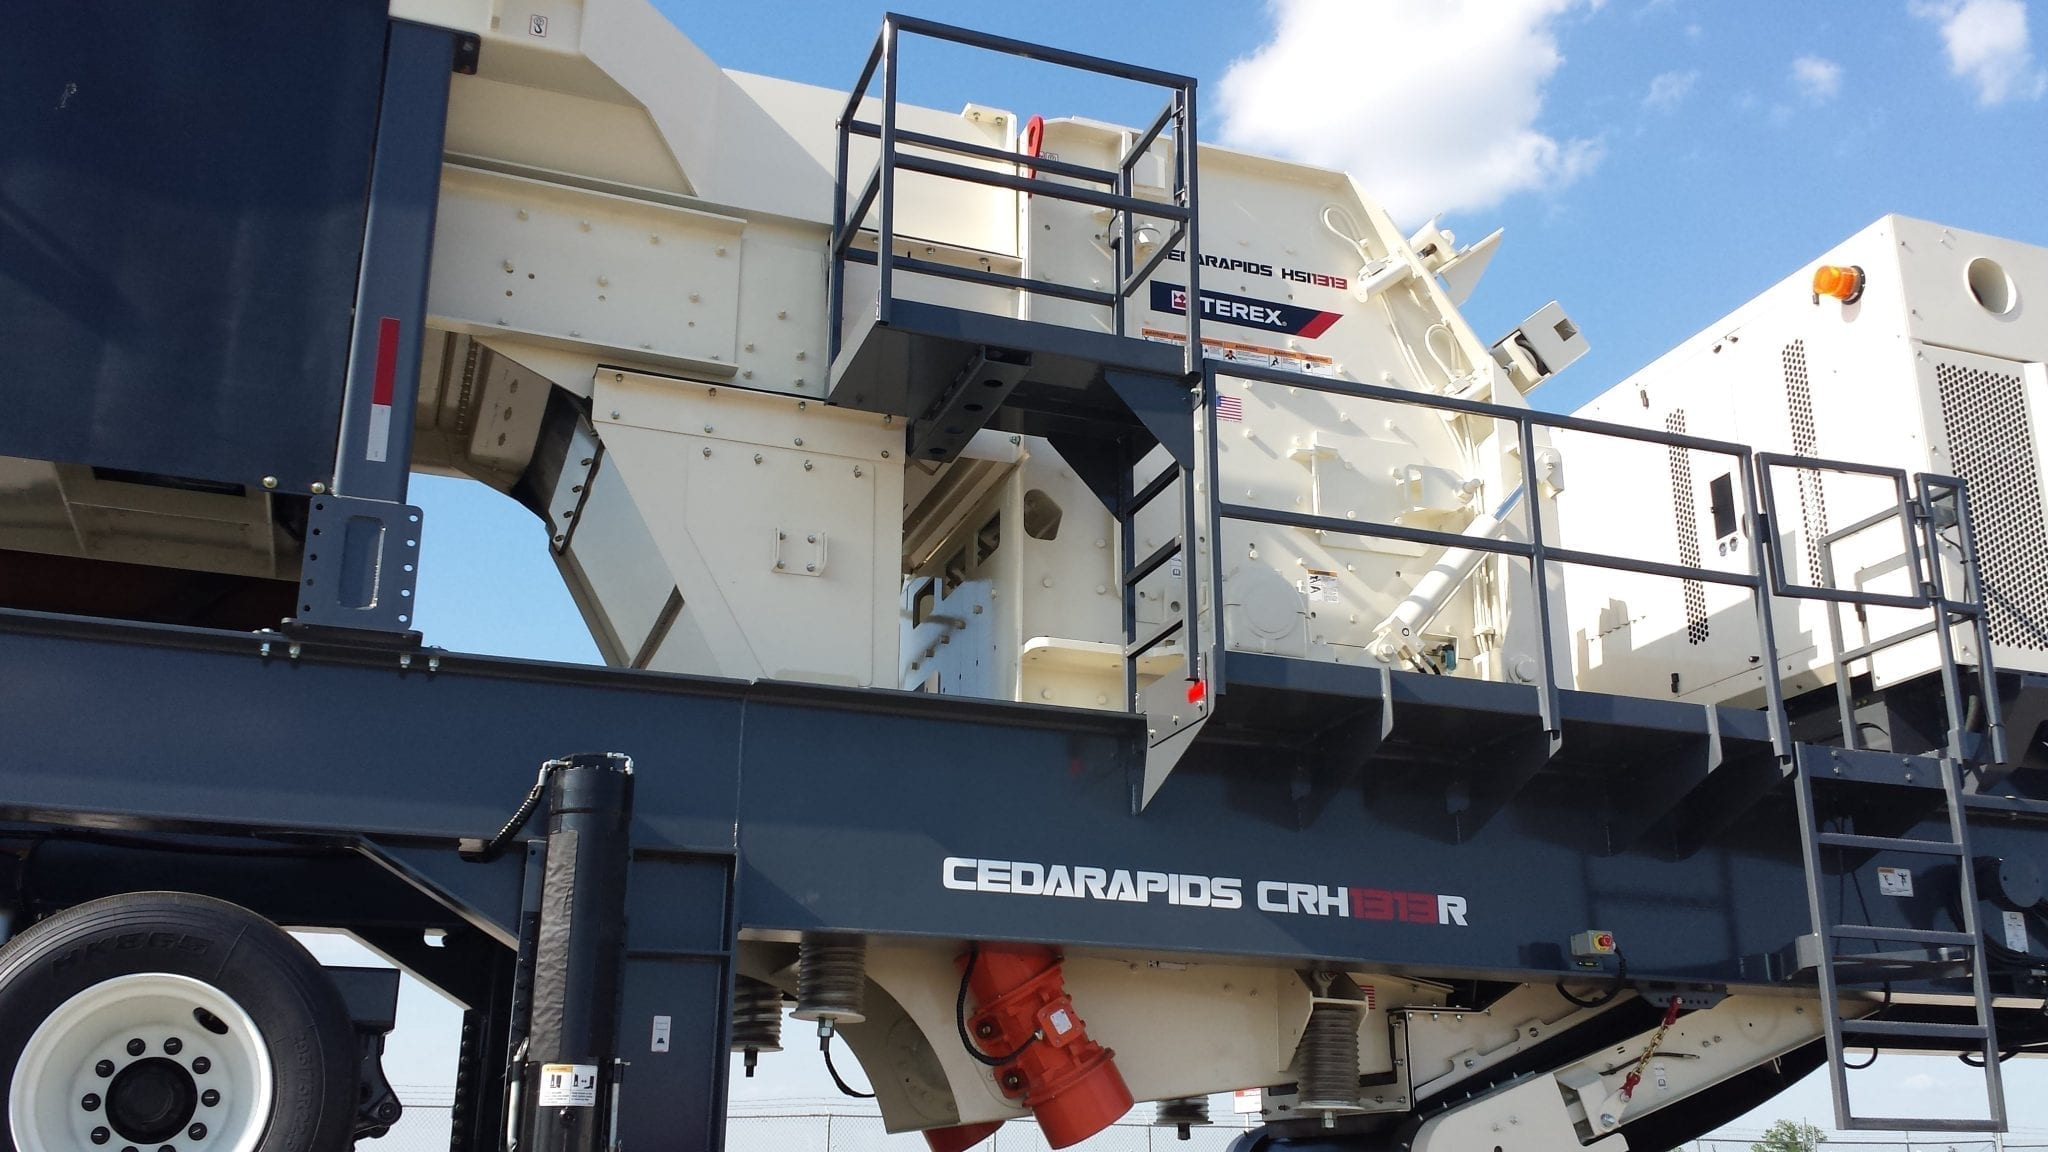 Cedarapids CRH1313R HSI impact crusher